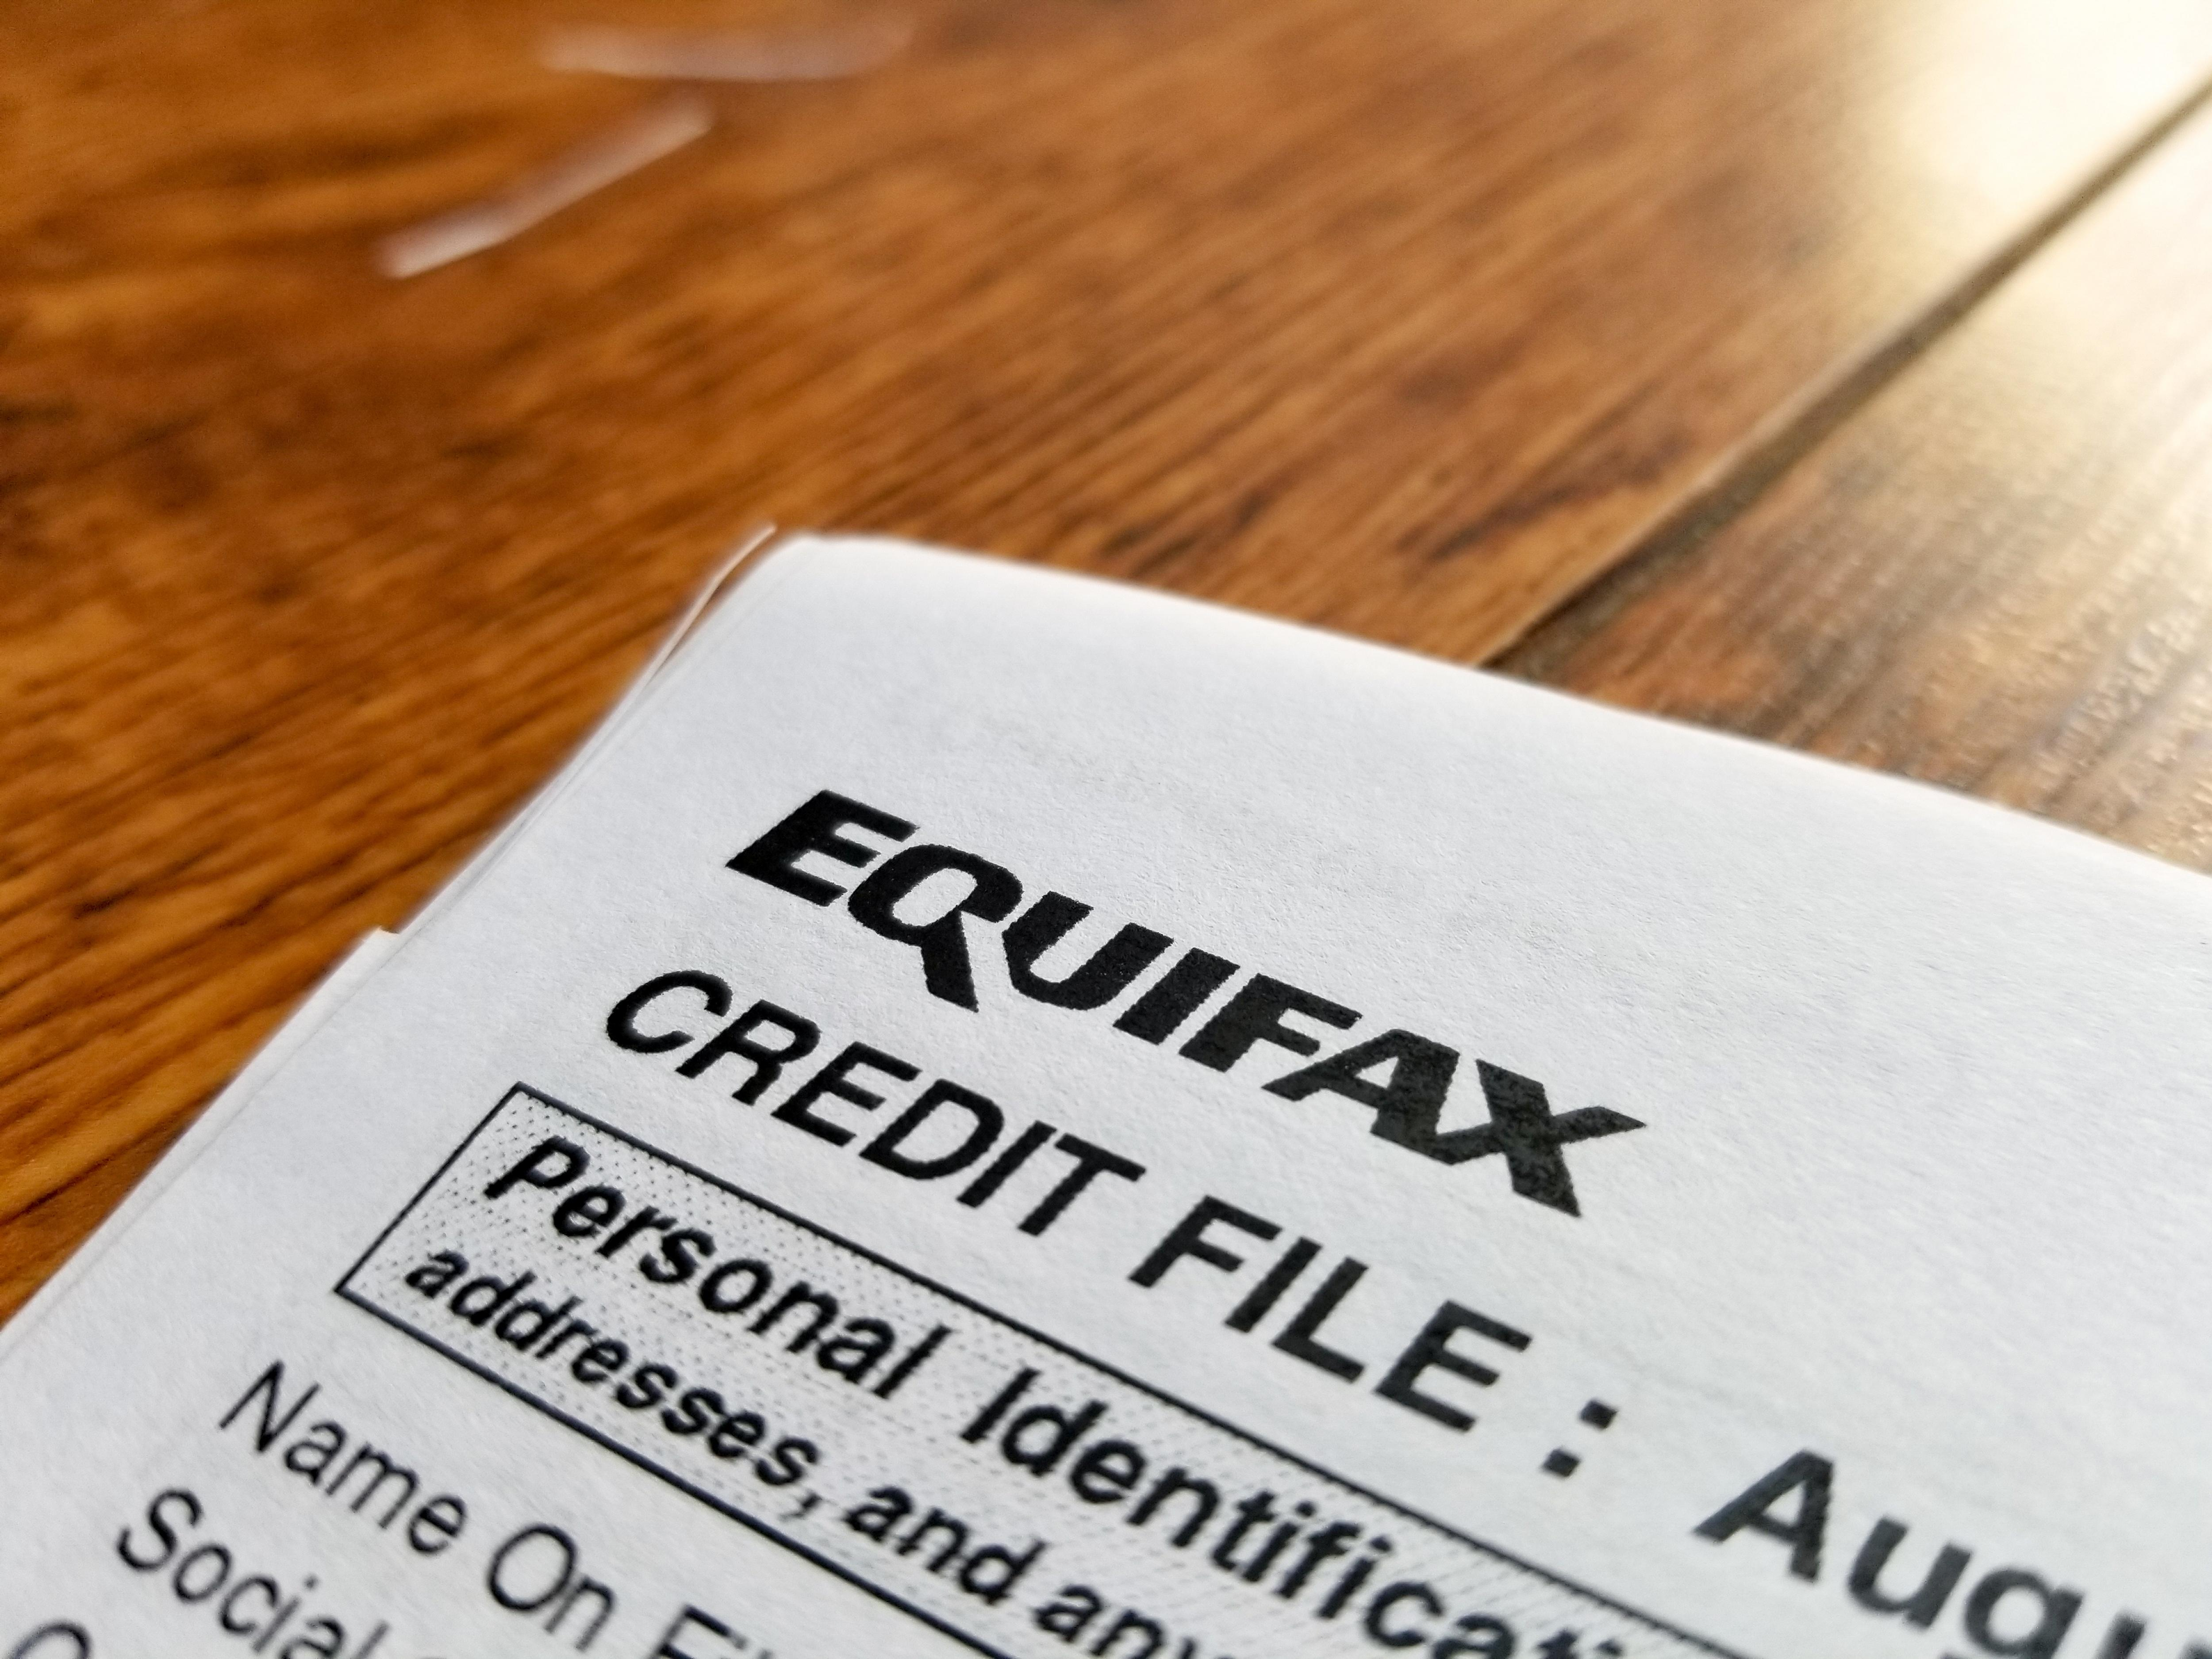 Equifax to pay up to $700M in massive data breach settlement